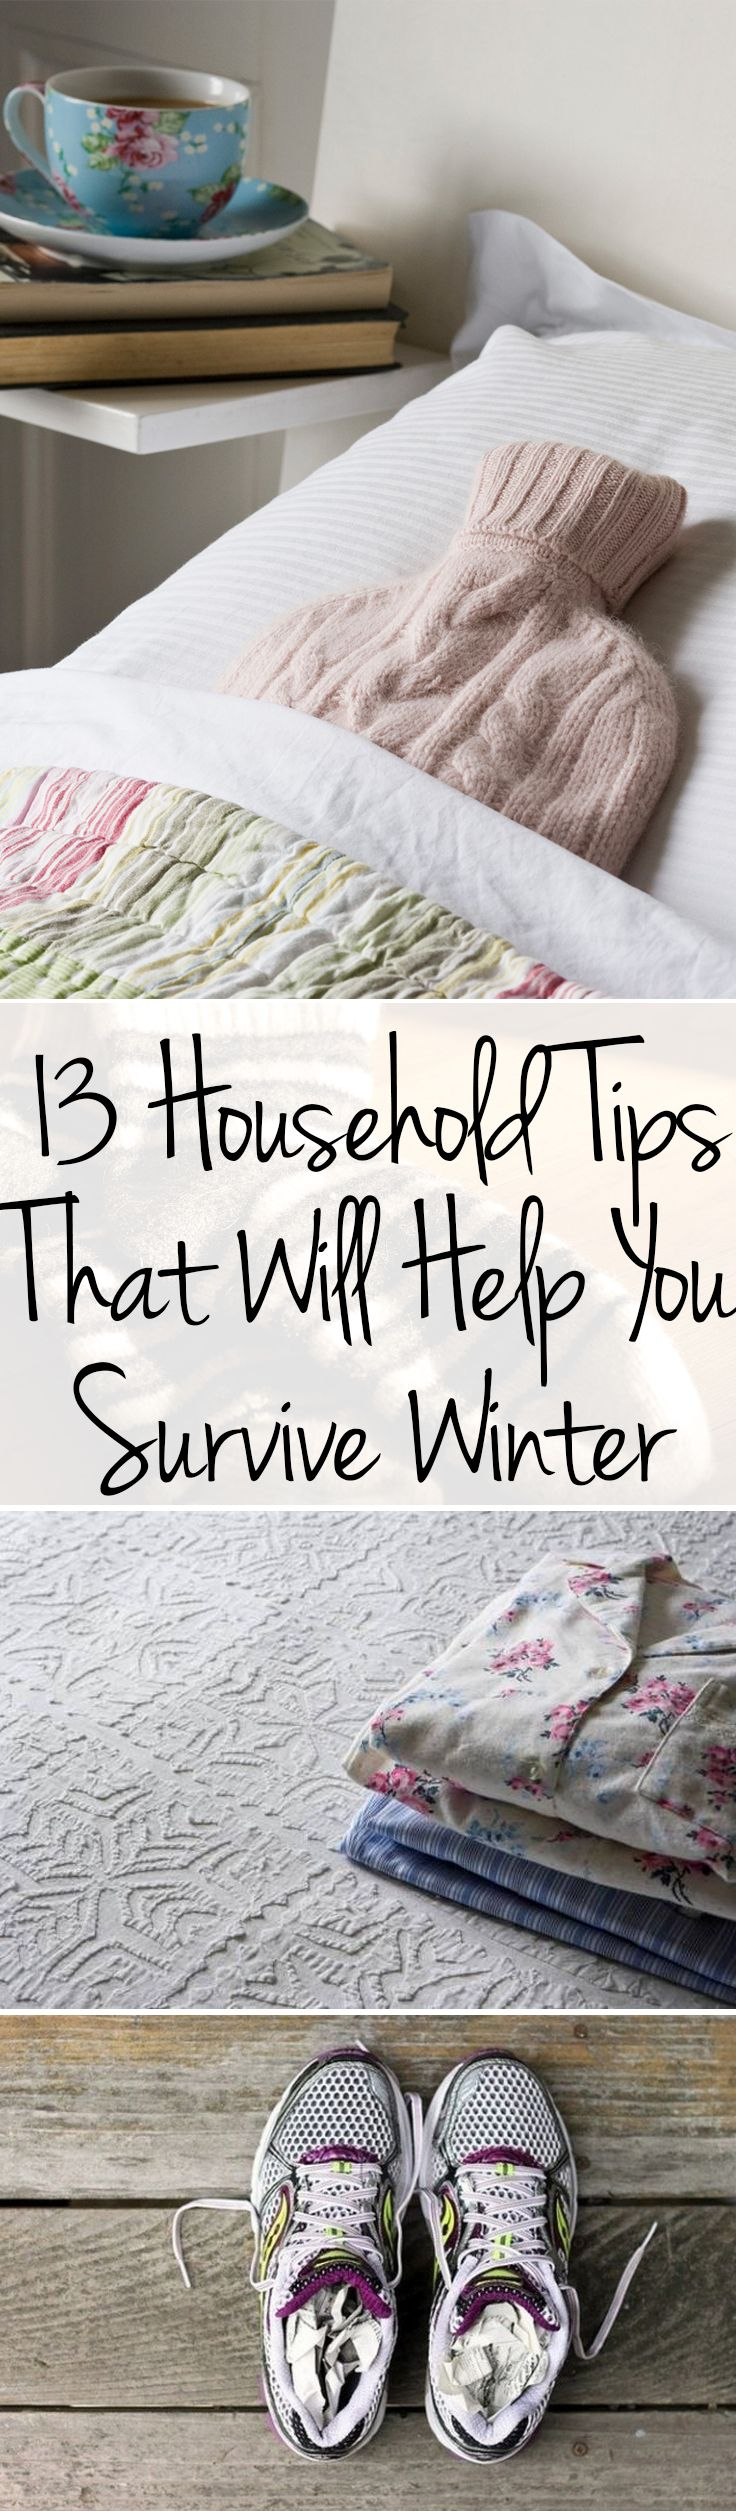 Household Hacks, Winter TIps and Tricks, Winter Survival Tips, Household Care Hacks, Life Hacks, Household Care tIps and Tricks, Winter Weather Tips and Tricks, How to Cut Back on Heating, Save Money on Electricity